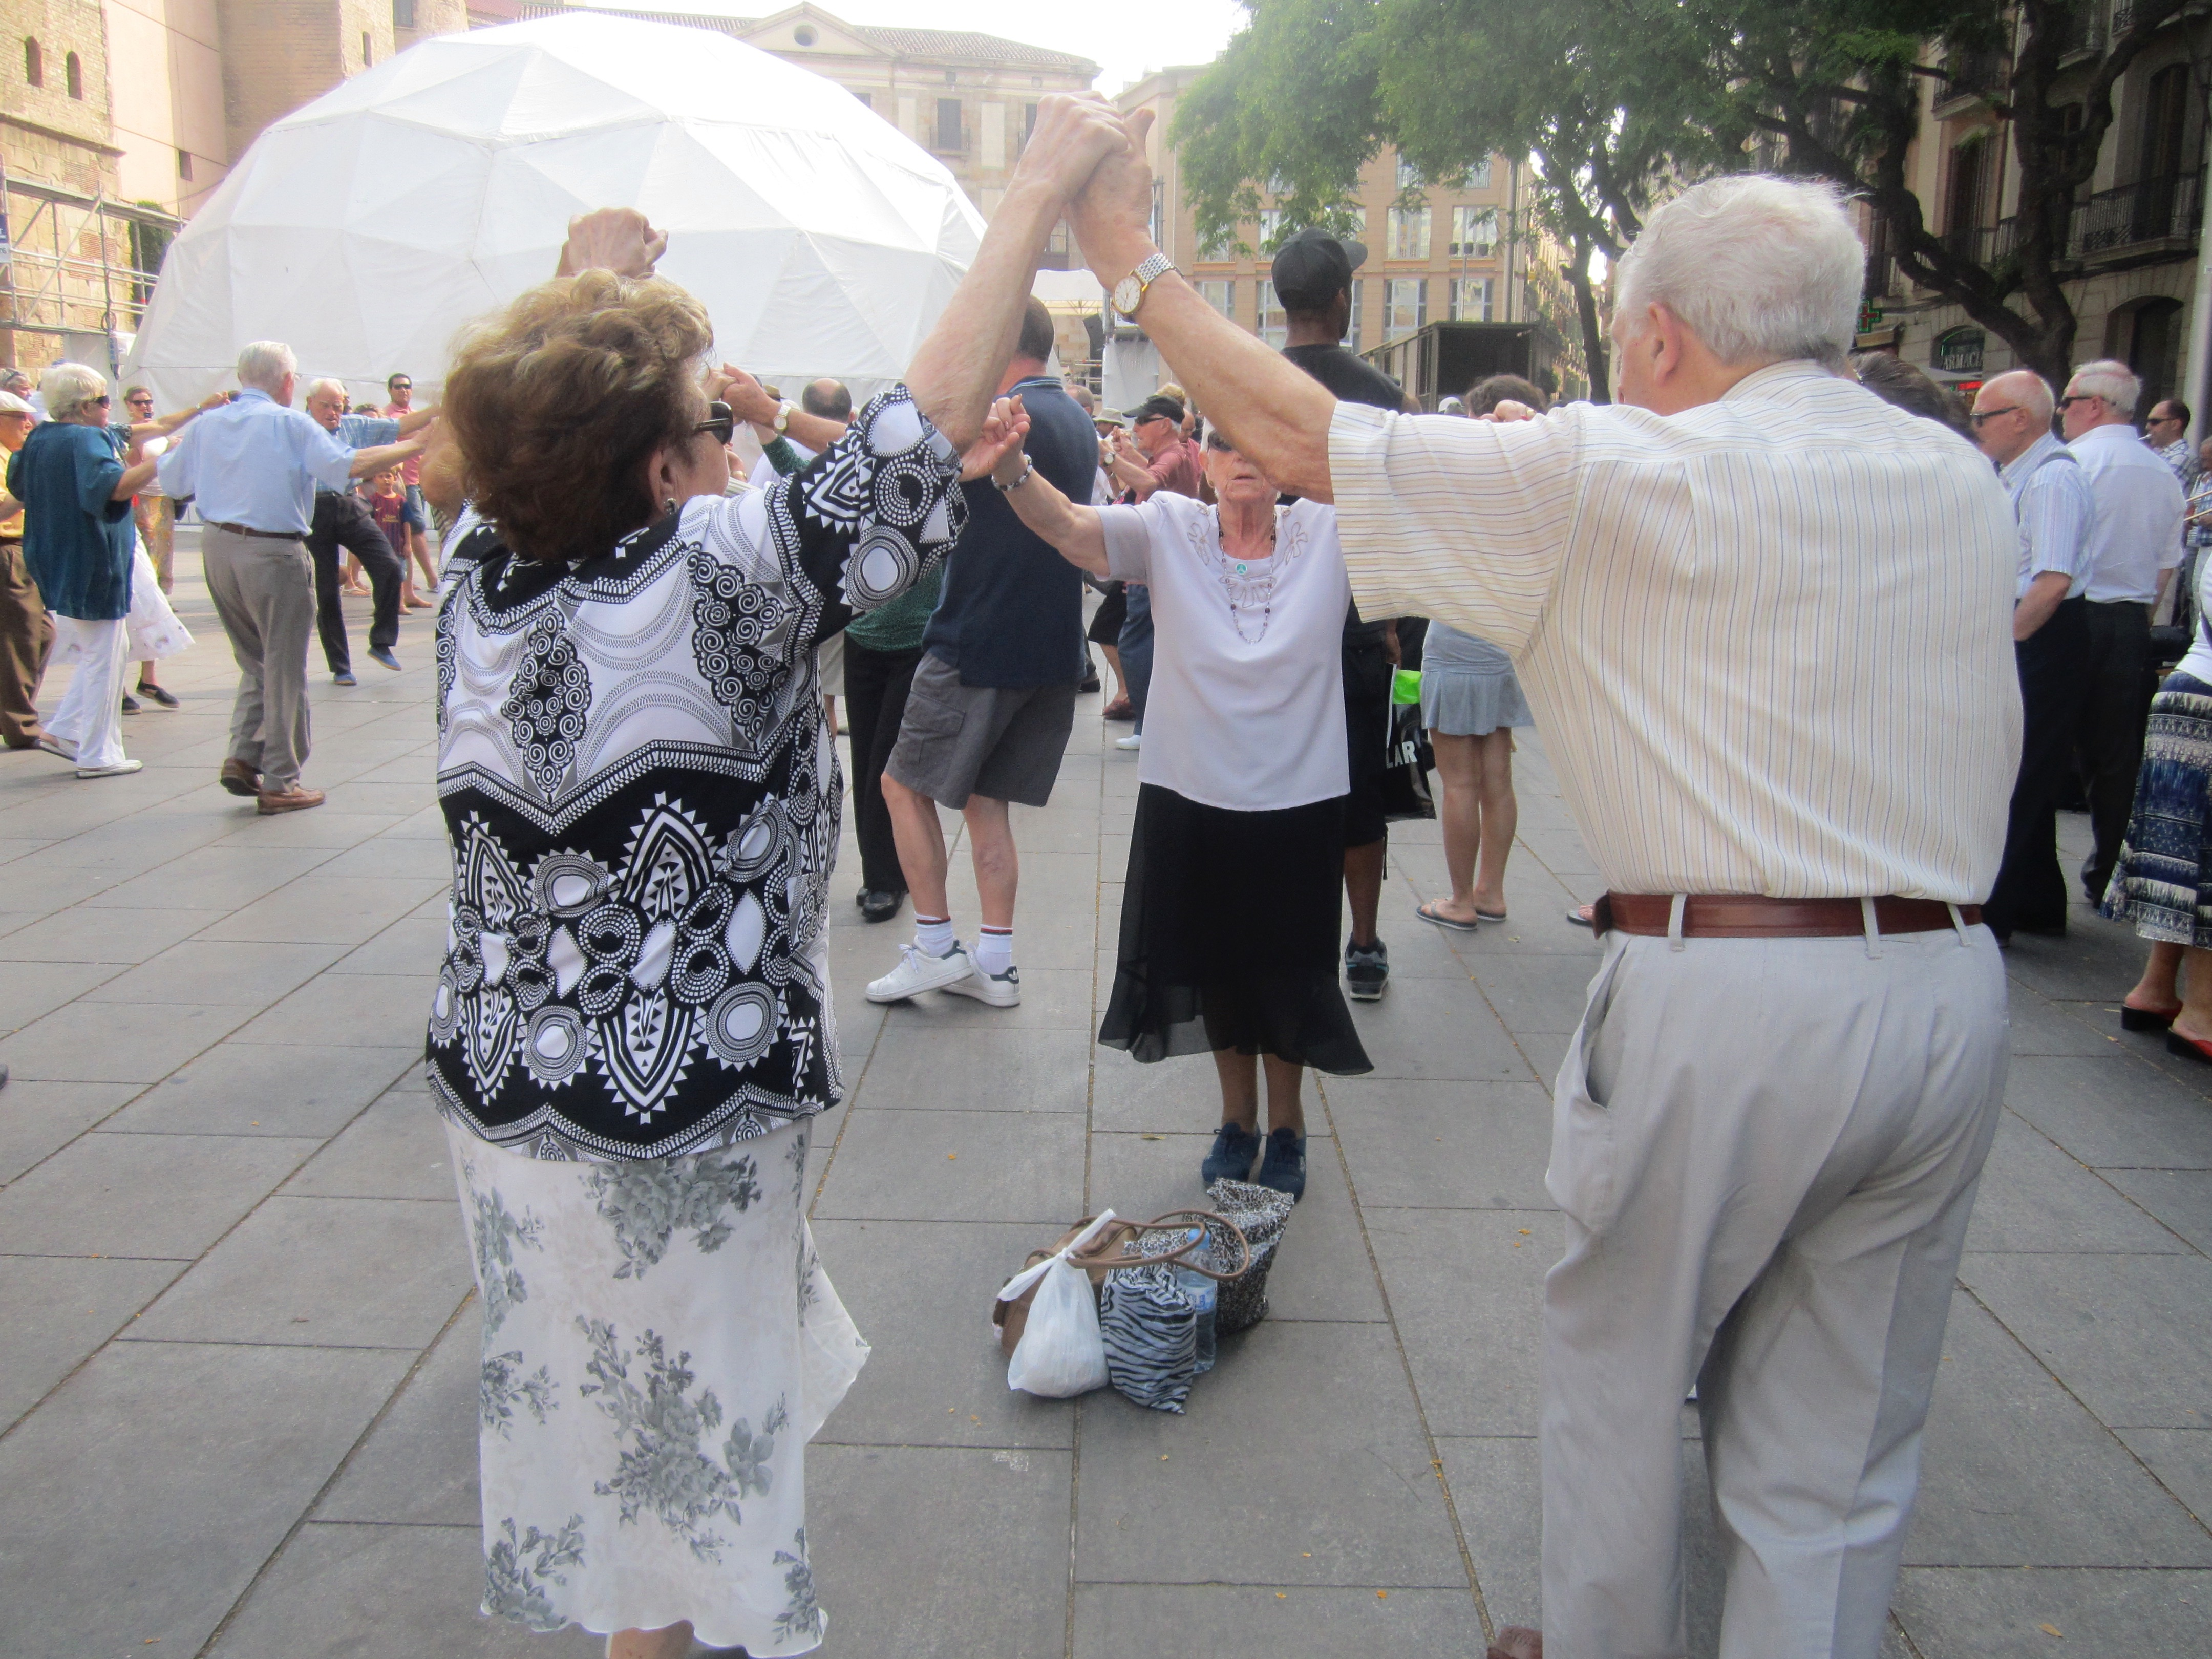 sardana dances la merce guide Barcelona Spain